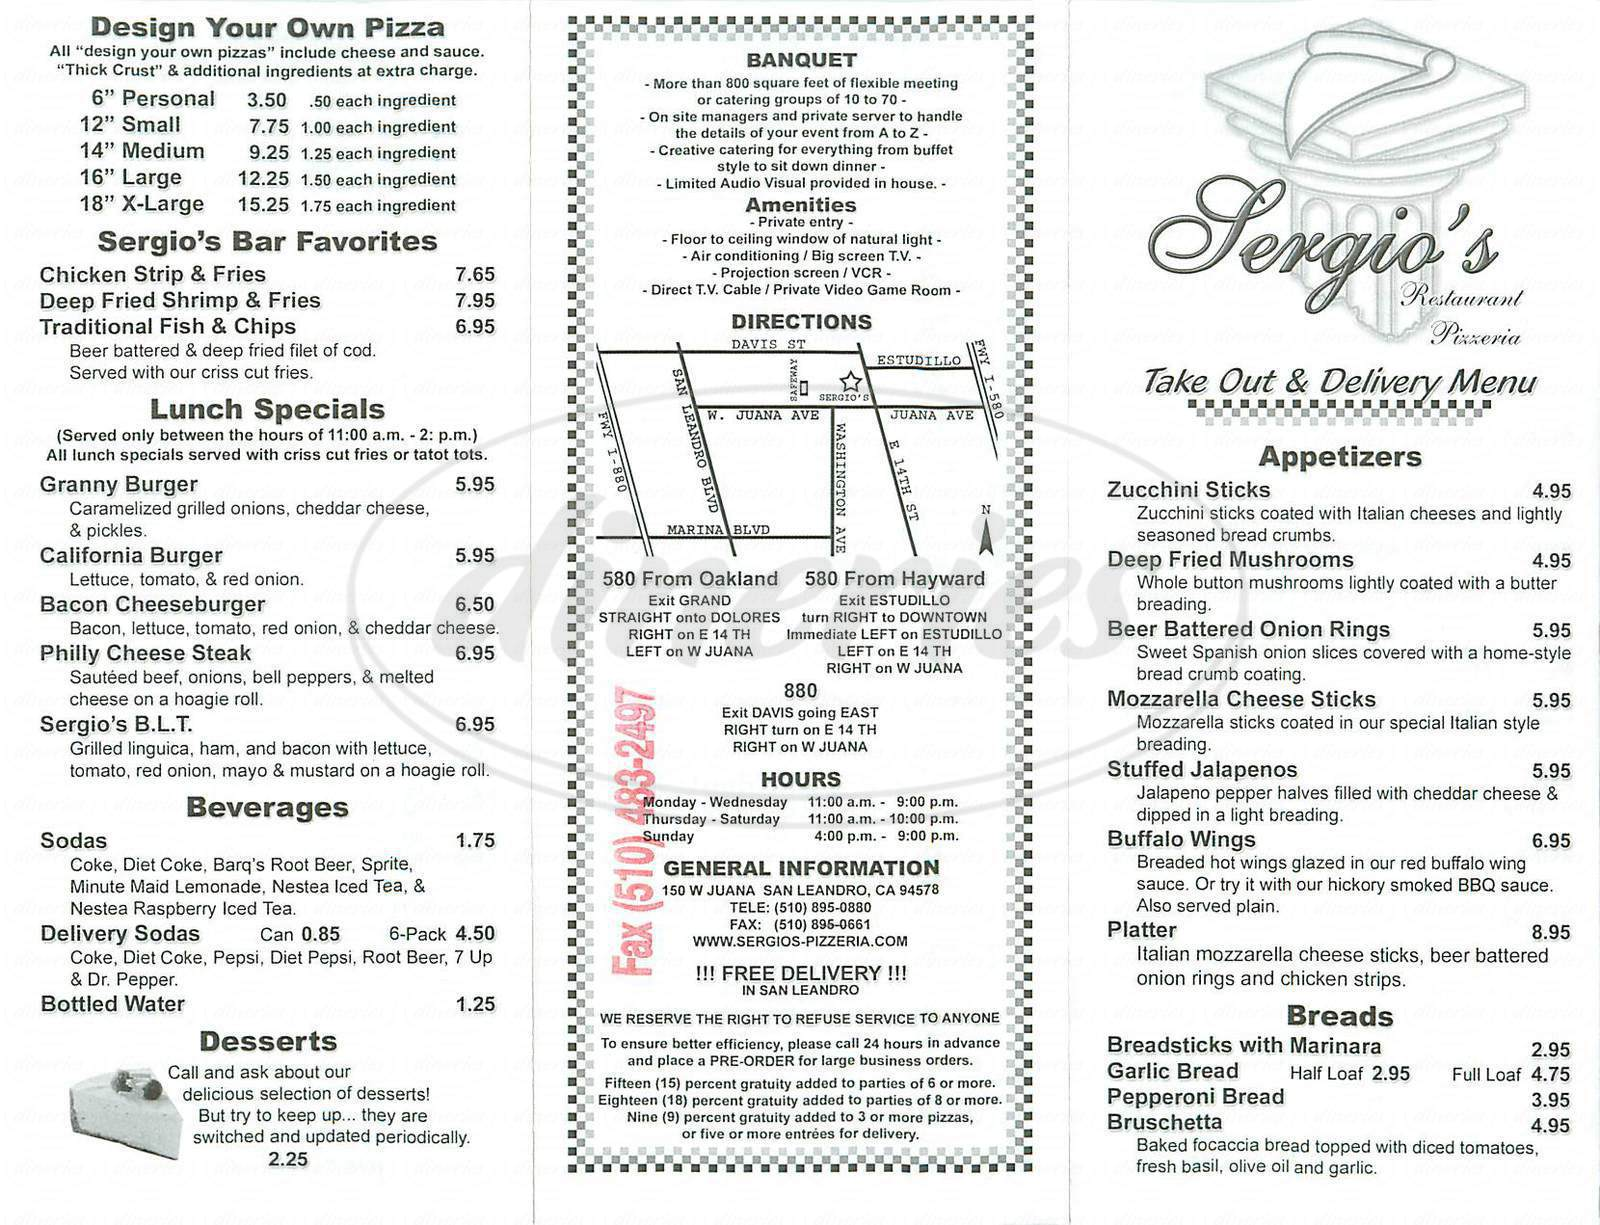 menu for Sergios Pizzeria